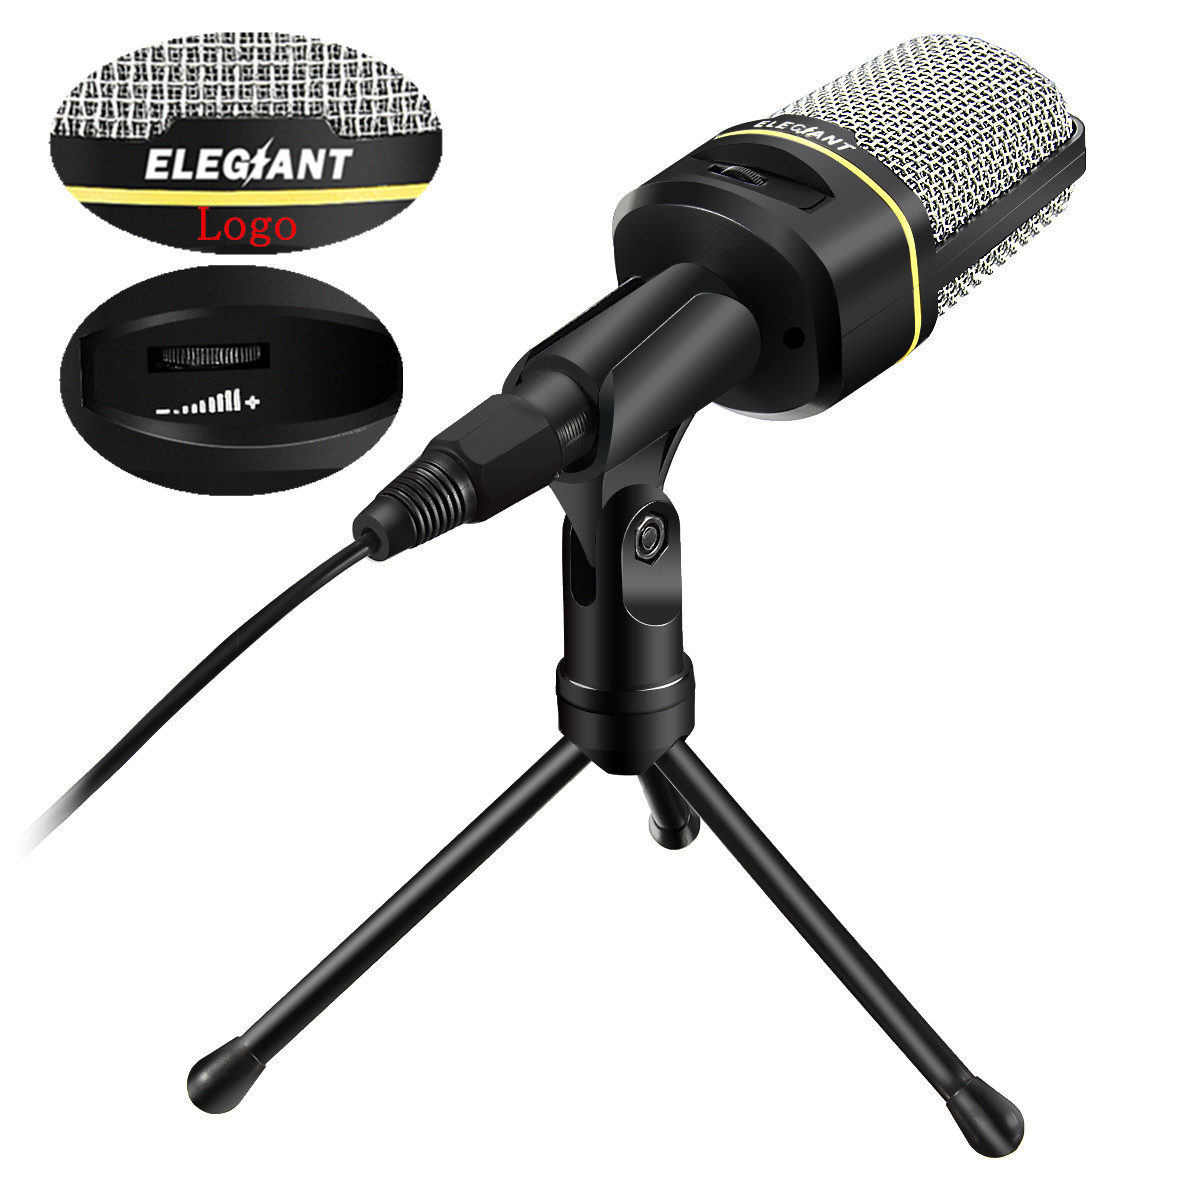 ELEGIANT SF-920 3.5mm Wired Studio Recording USB Condenser Microphone Mic +Tripod Stand by